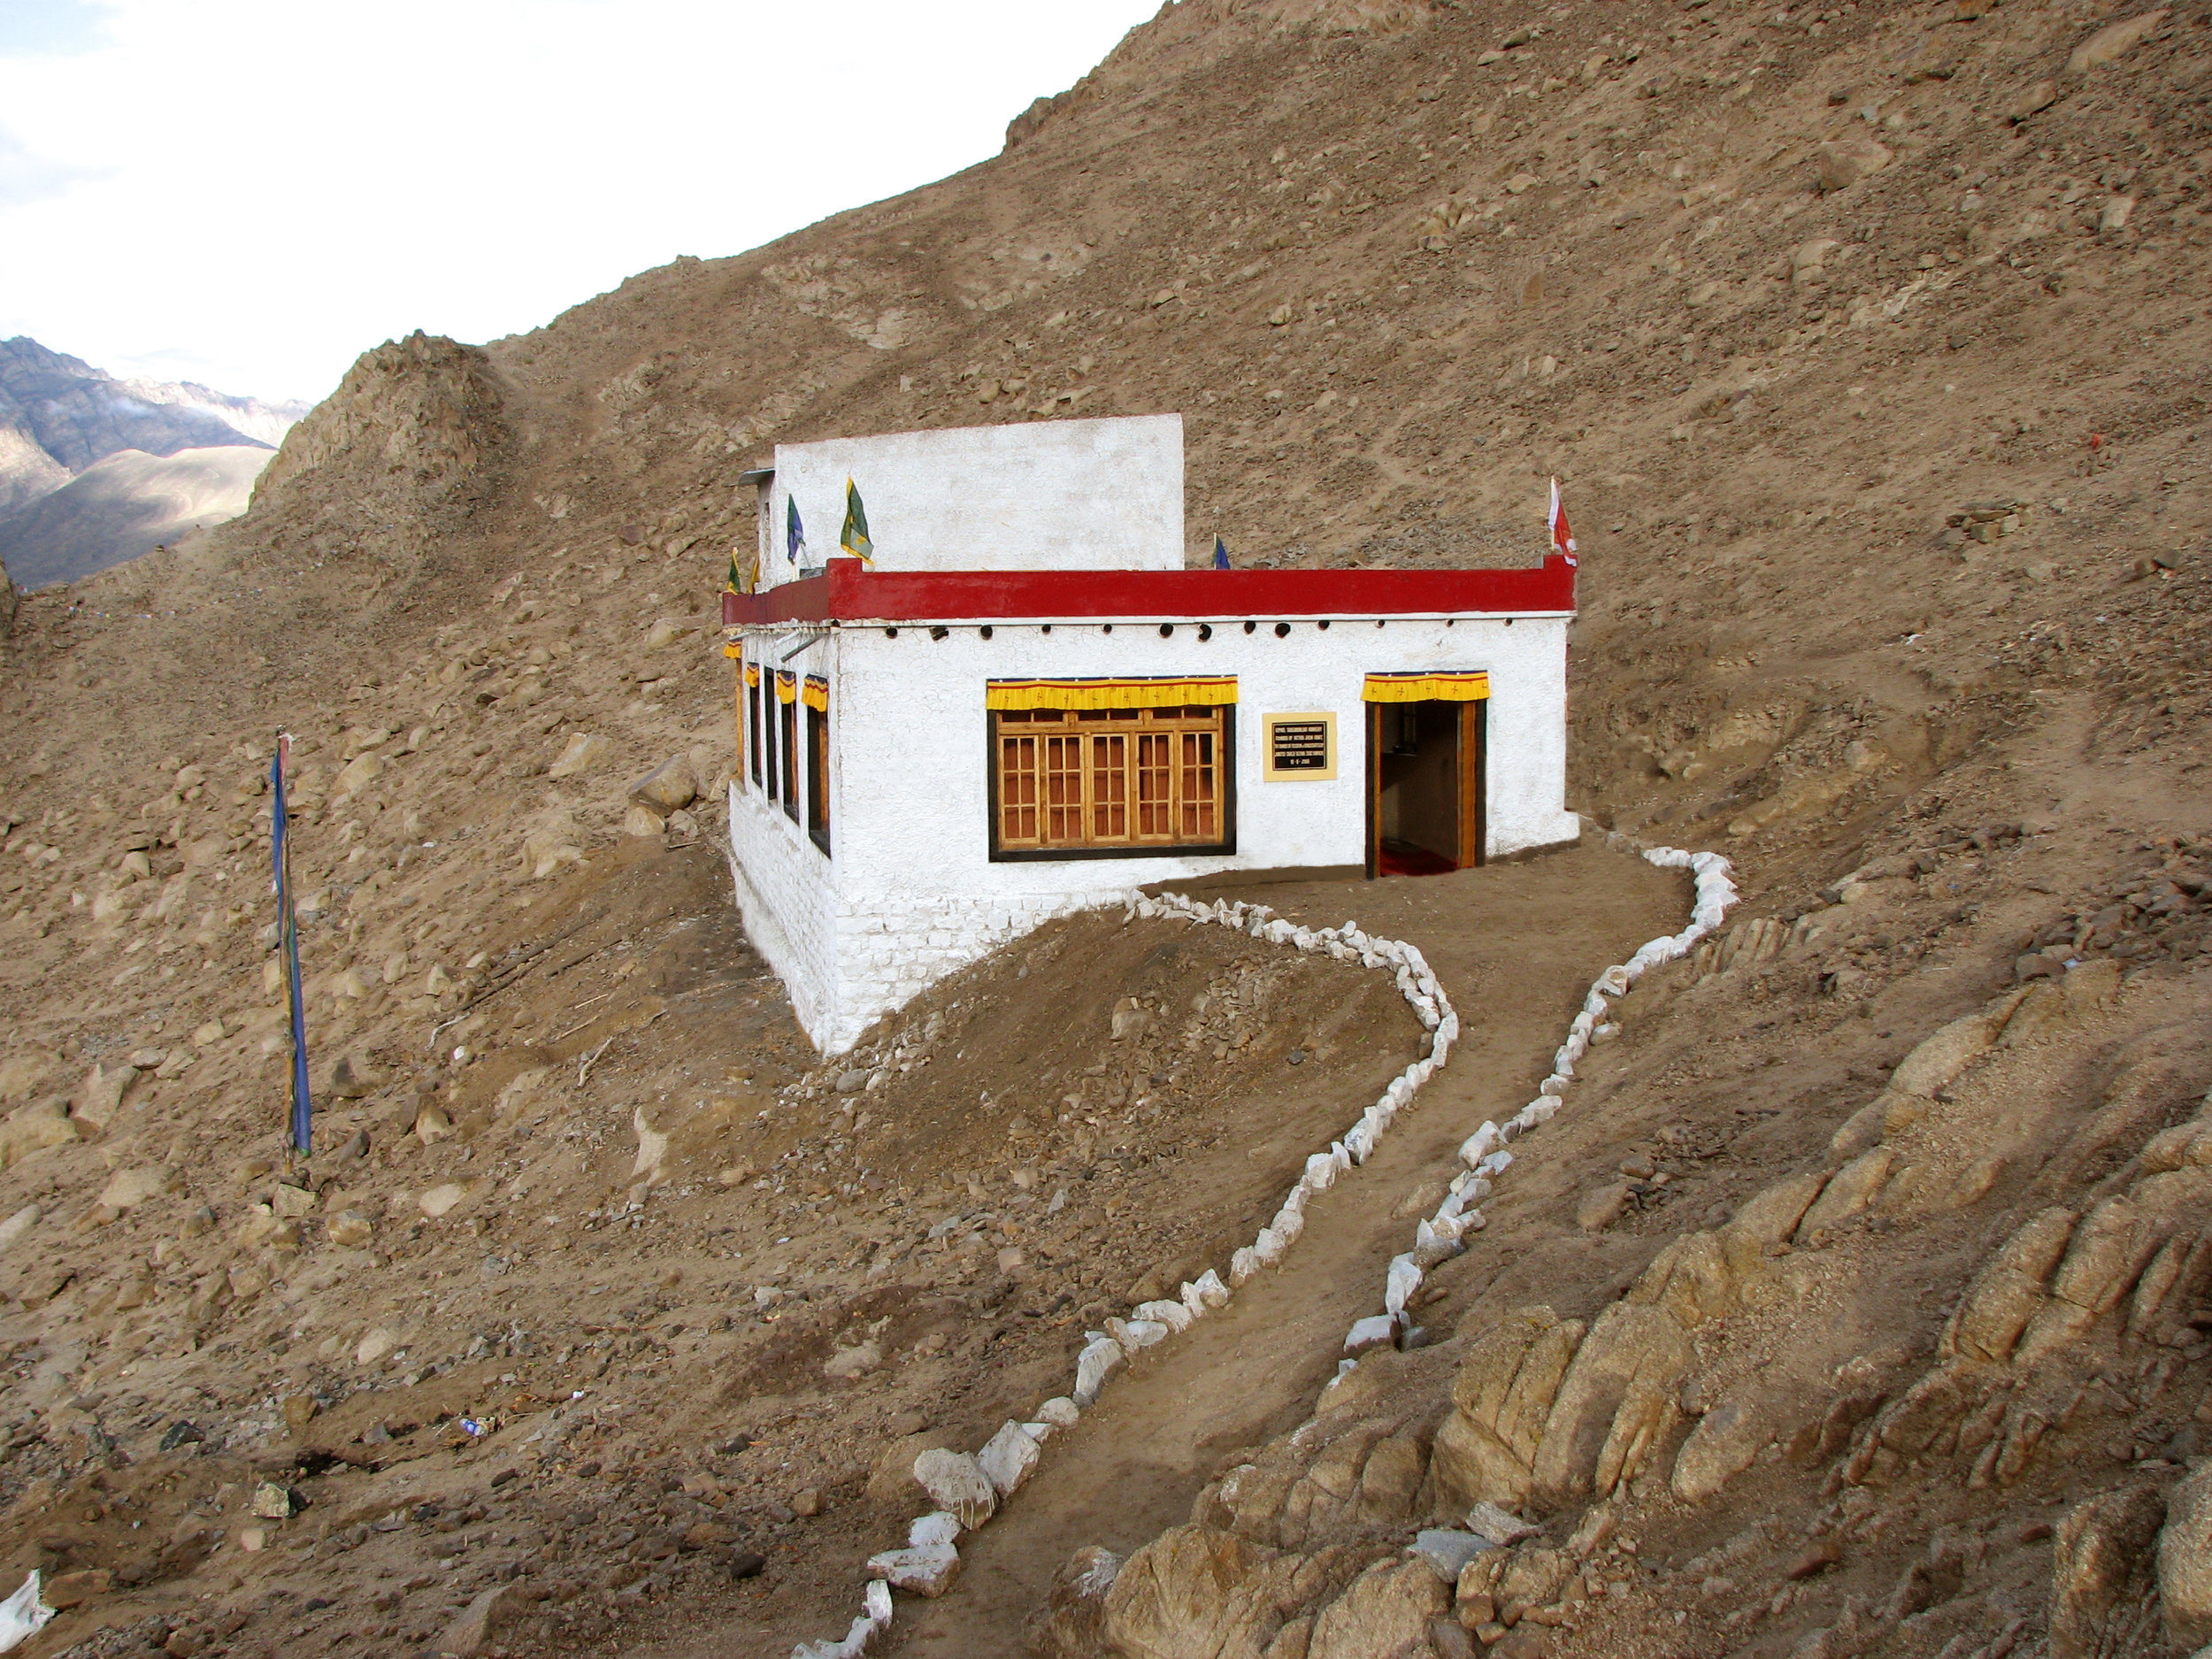 Saboo Ayu Nunnery, Ladakh - Funded by Fulcrum Students from Scotland and East London